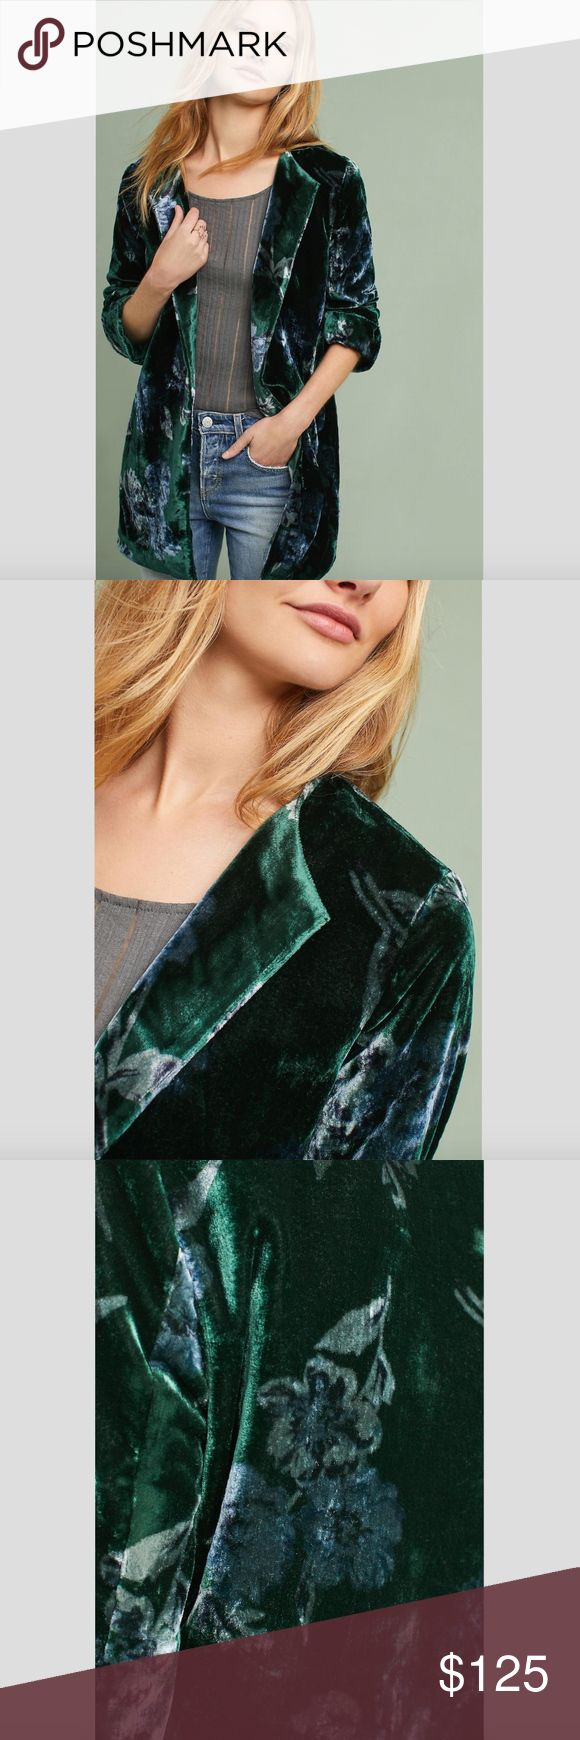 """Anthropologie Floral Velvet Car Coat Adorned with demure florals, this velvet car coat is a luxe-chic layer for the new season.  By Eva Franco Viscose, polyester; polyester lining Side pockets Open front Dry clean Imported 33""""L COLOR: Holly Anthropologie Jackets & Coats"""